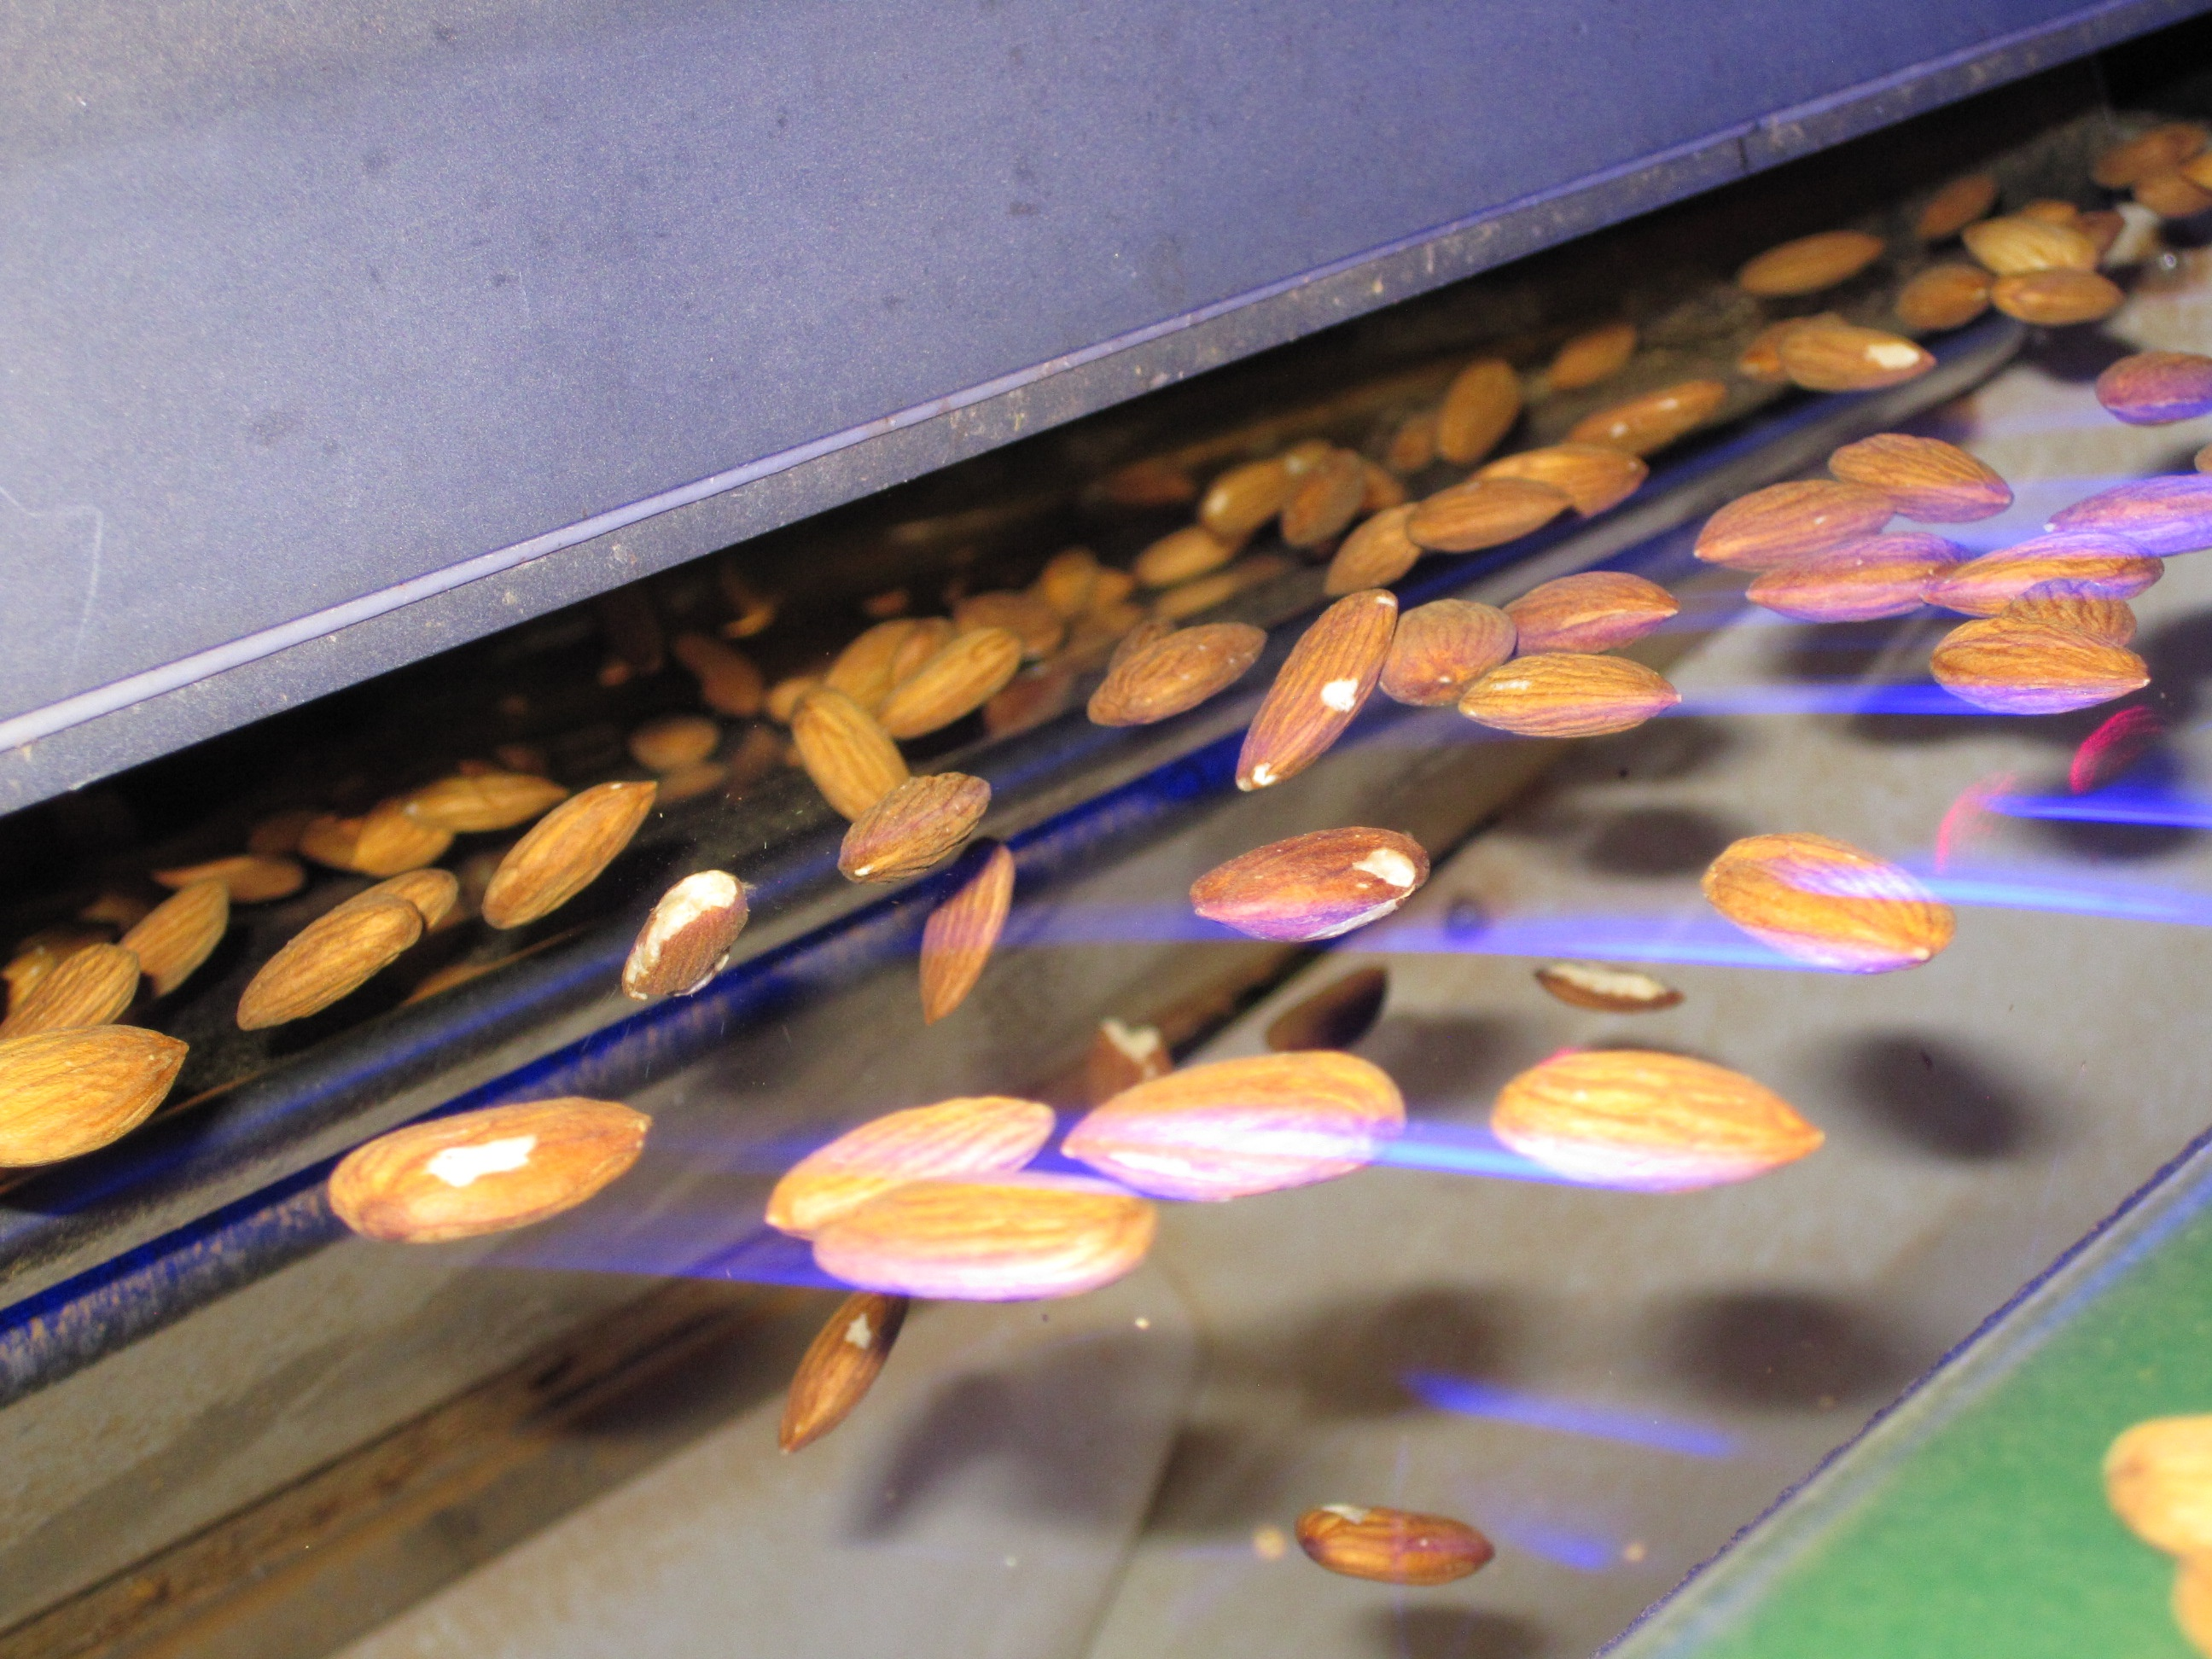 almond-sorting-with-TOMRA